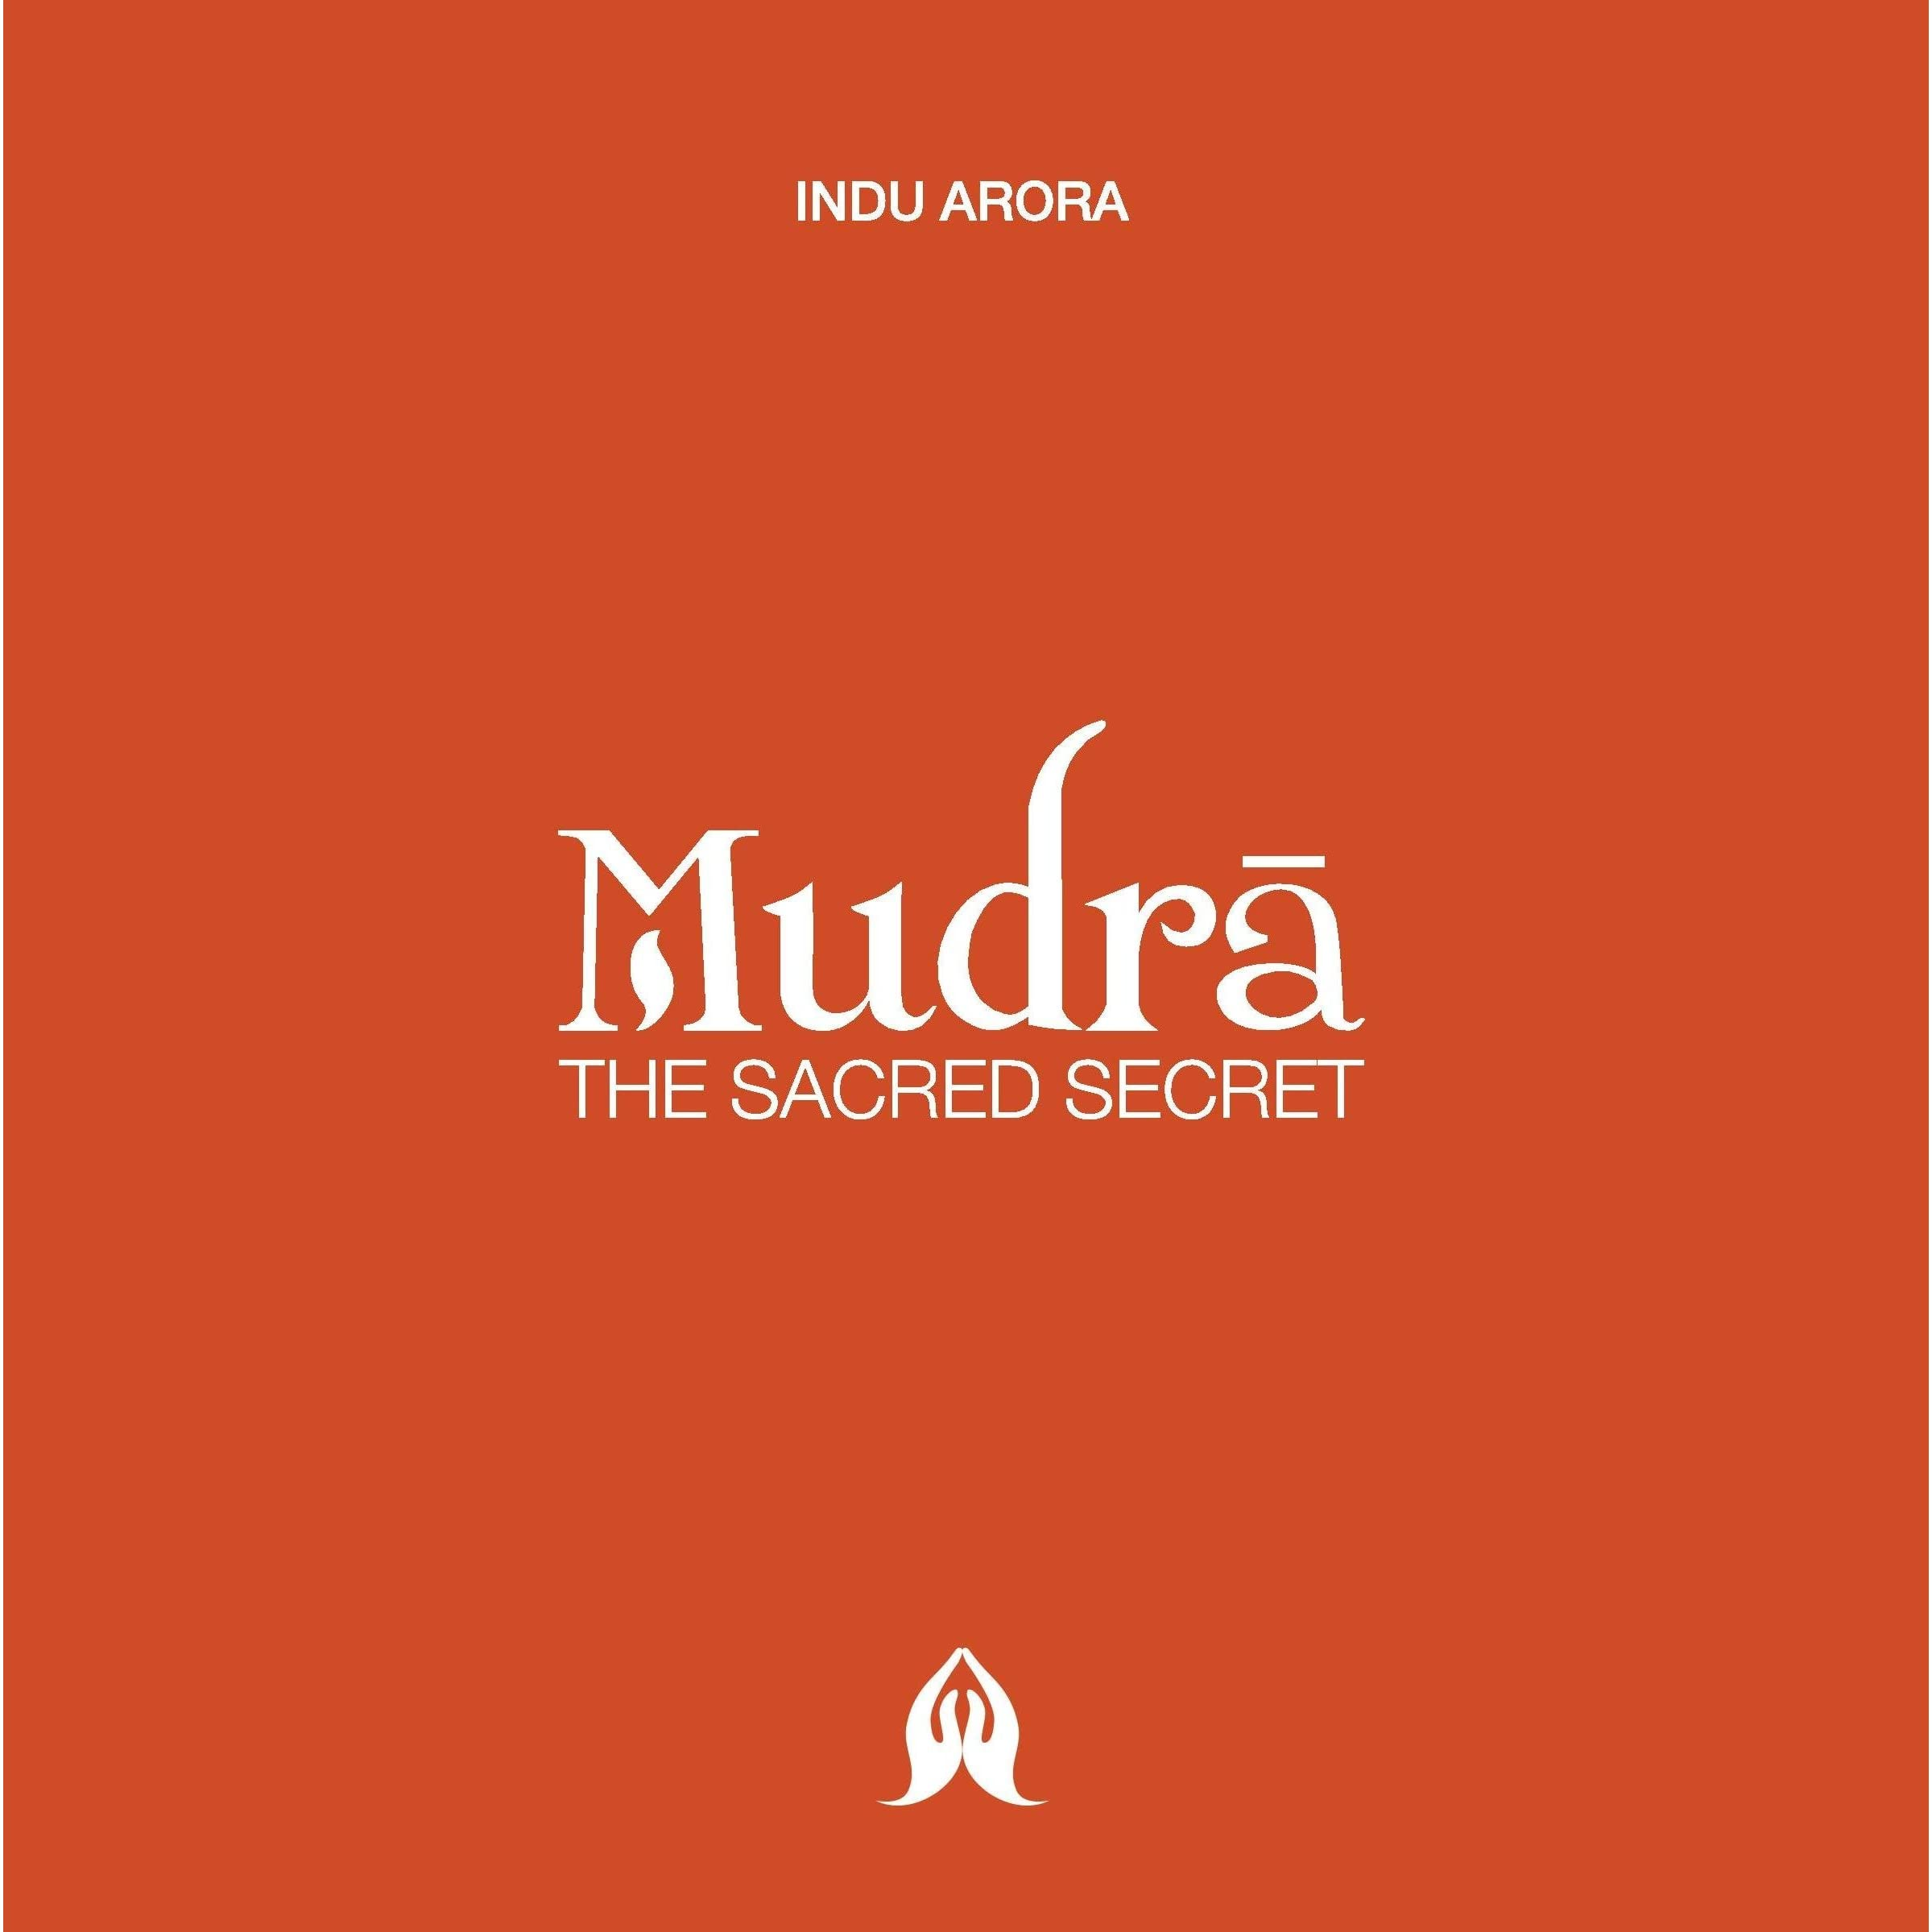 Mudra:The Sacred Secret by Indu Arora